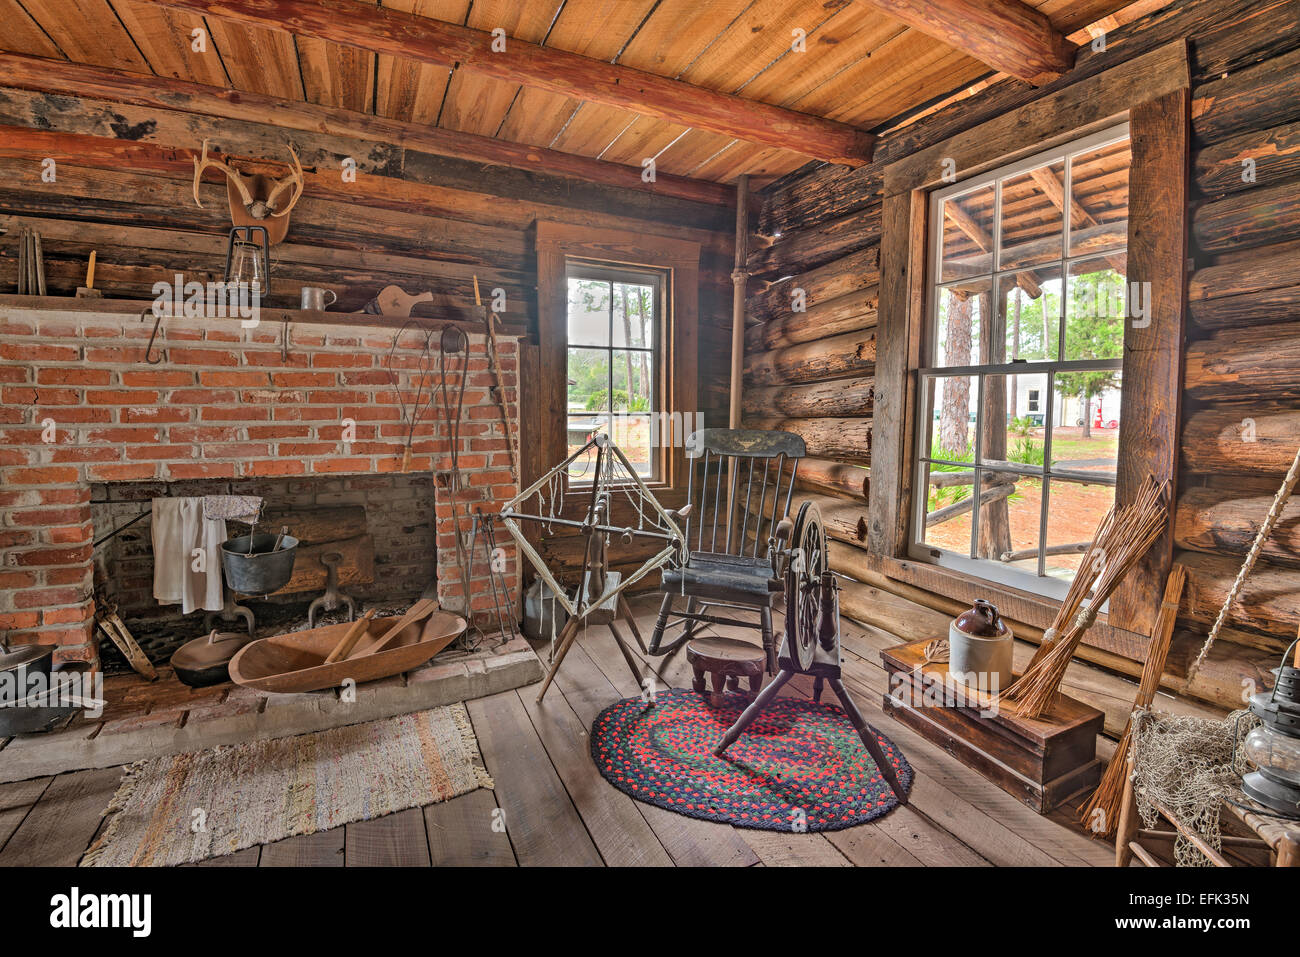 Interior of the historic McMullen-Coachman Log House in the Pinellas County Heritage Village - Stock Image